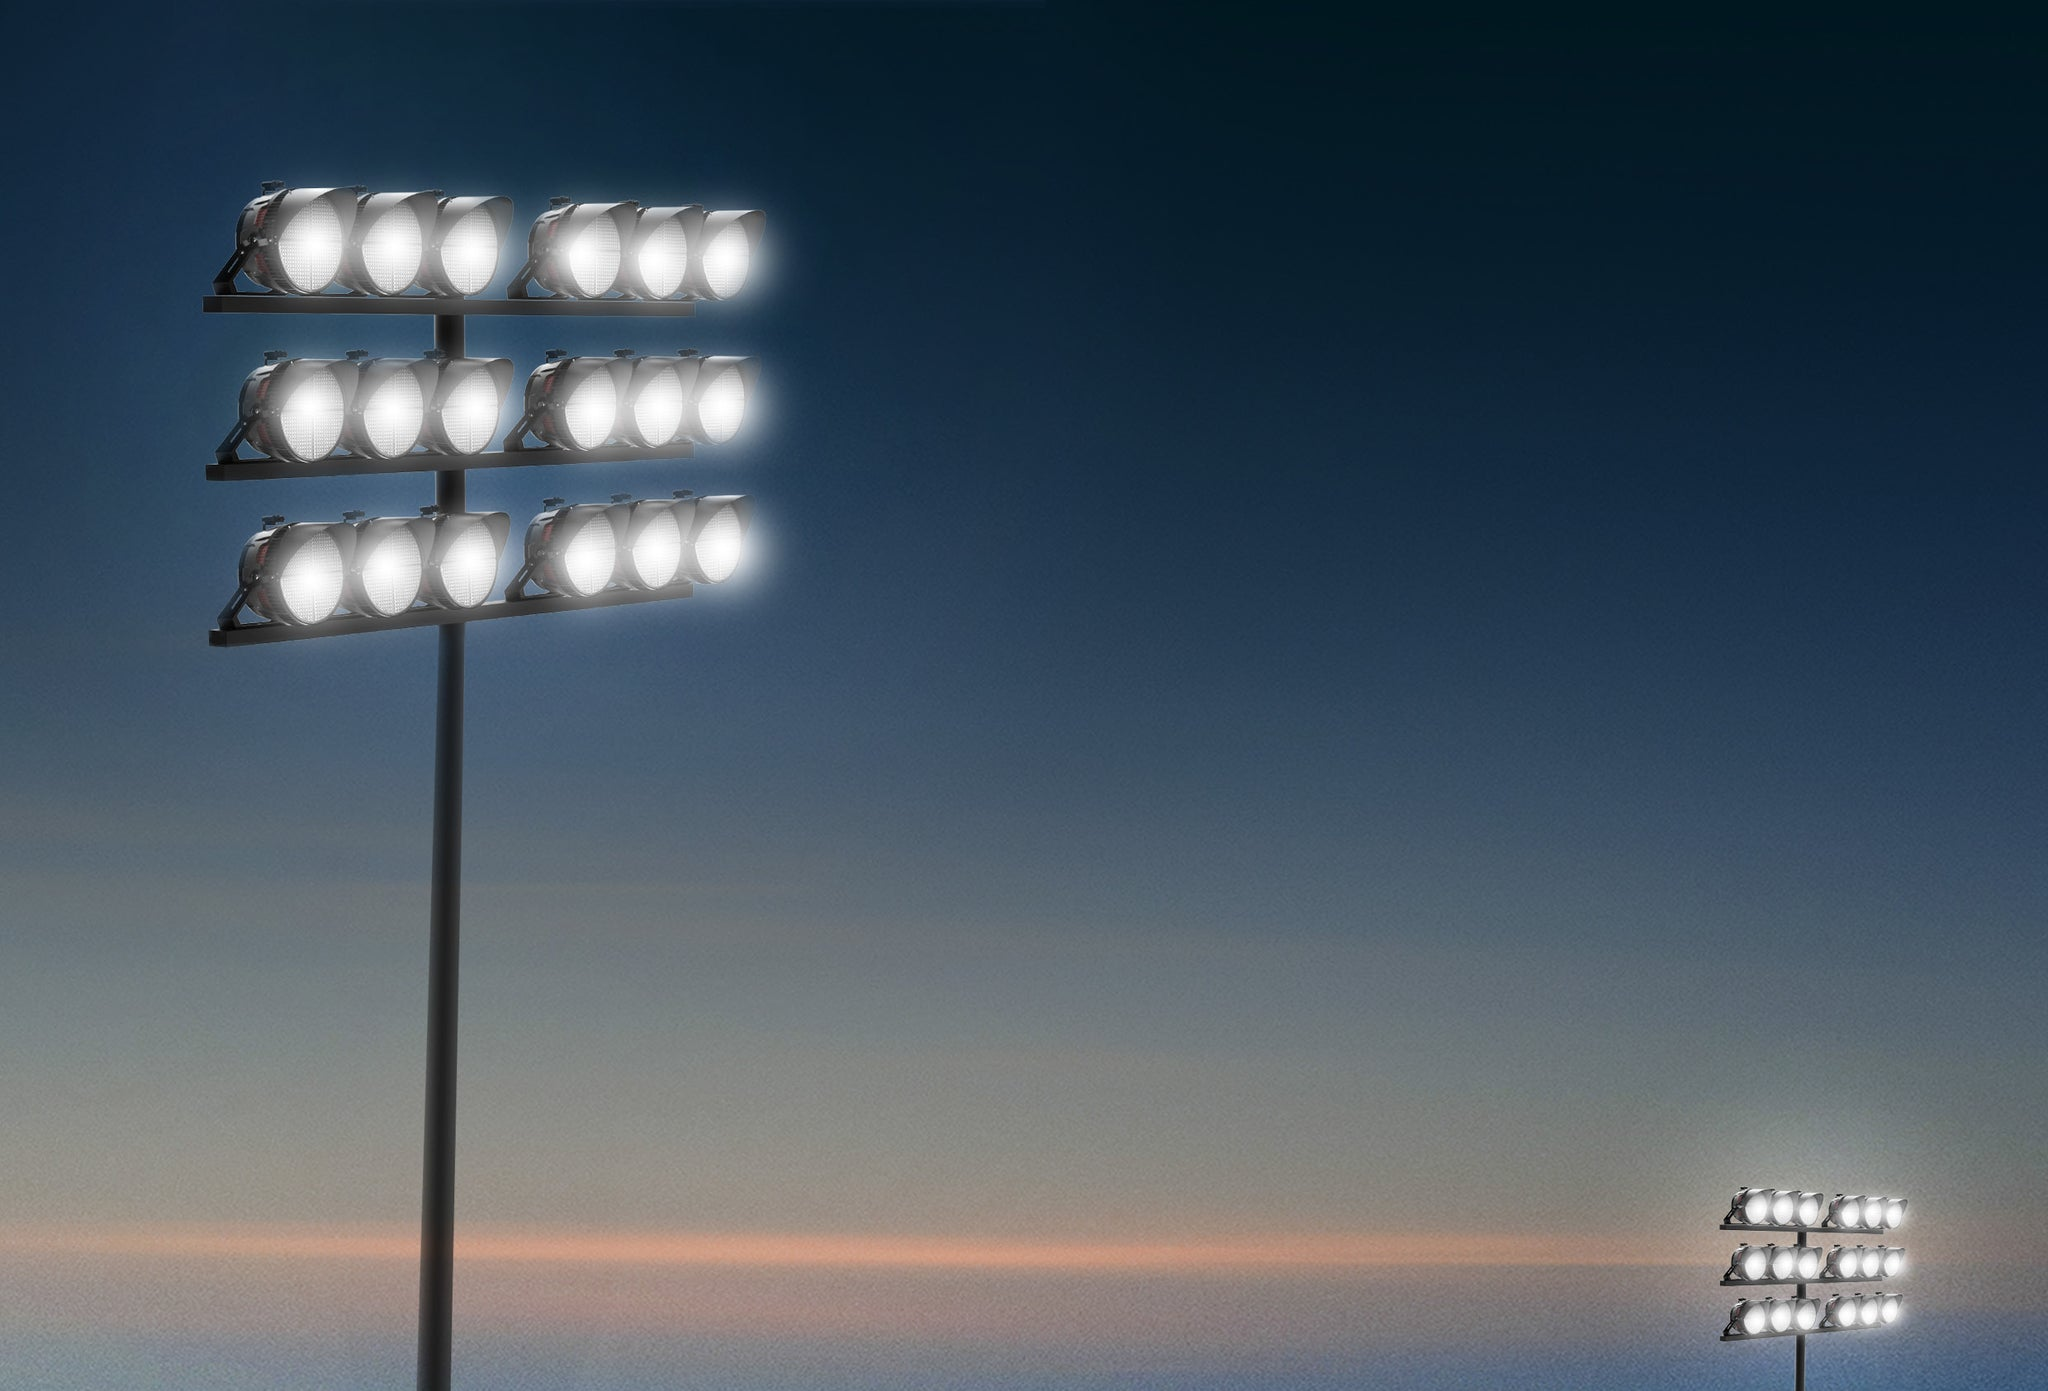 Eaton Ephesus alternative competitor better value - LED sports lighting